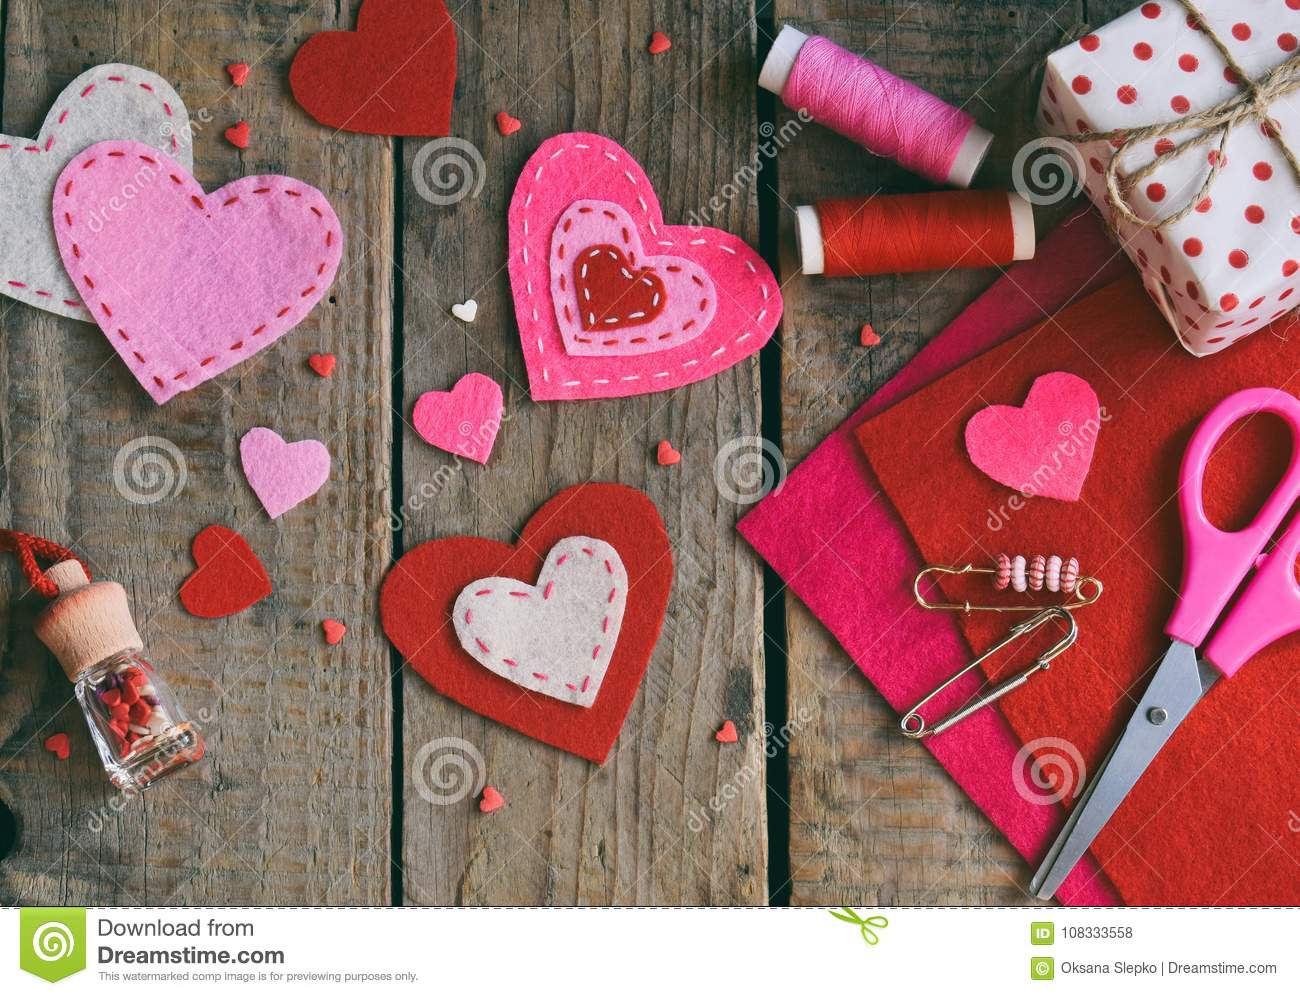 Making pink and red hearts of felt with your own hands. Valentines Day background. Valentine gift making, hobby. Childrens DIY